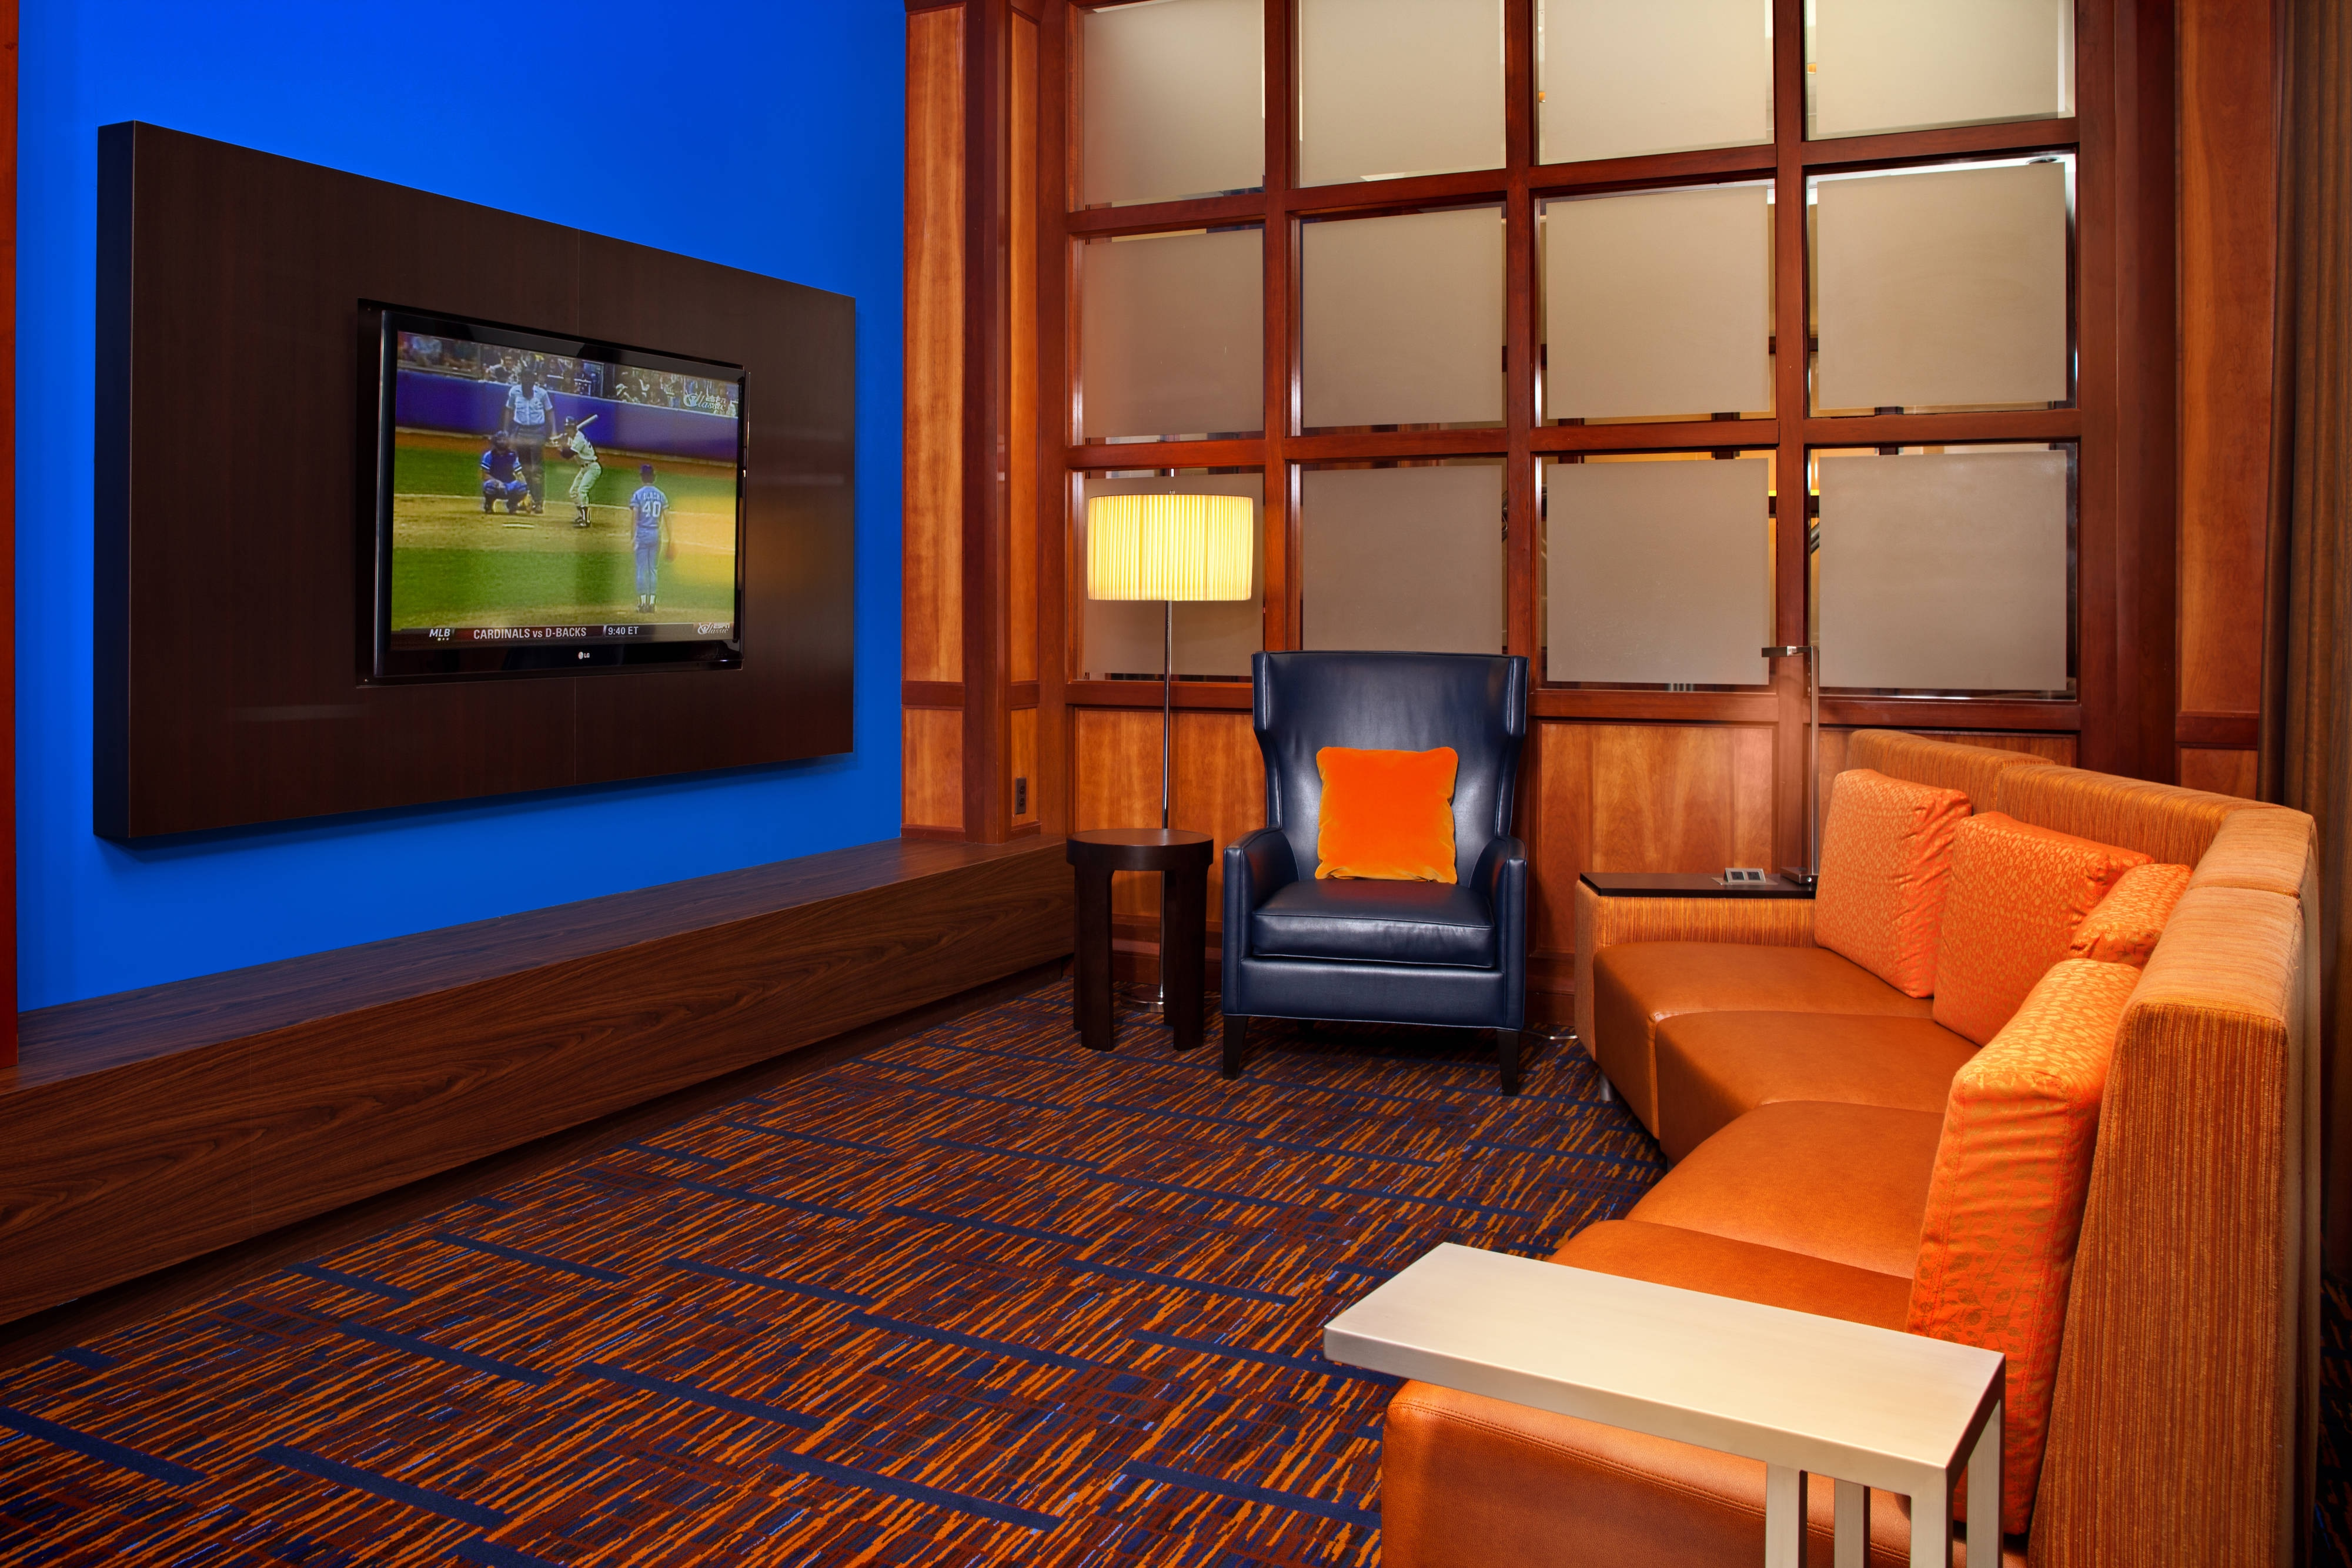 Courtyard Baltimore Lobby Home Theatre